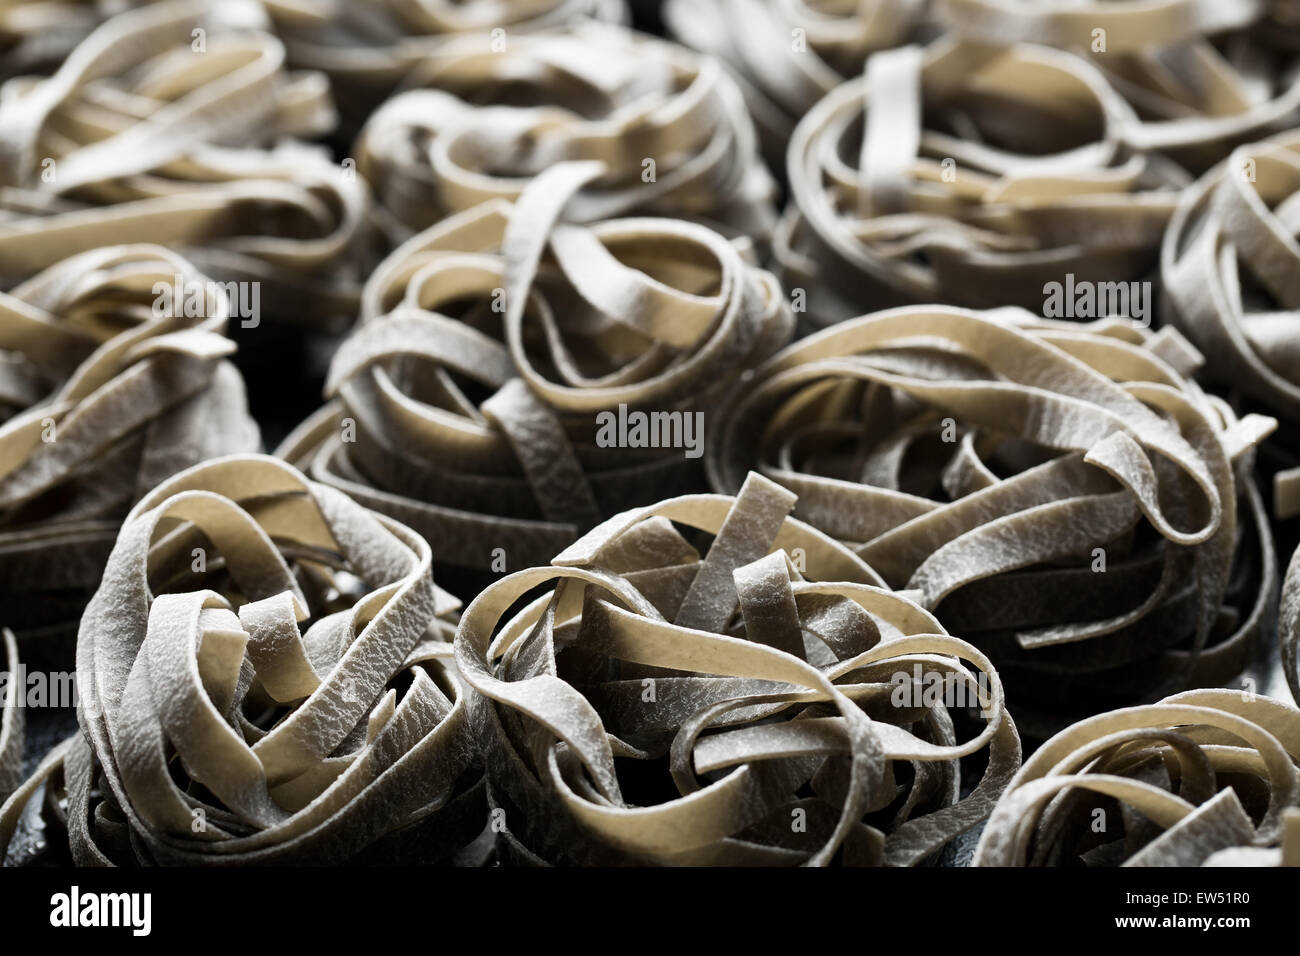 a lot of  black tagliatelle pasta - Stock Image